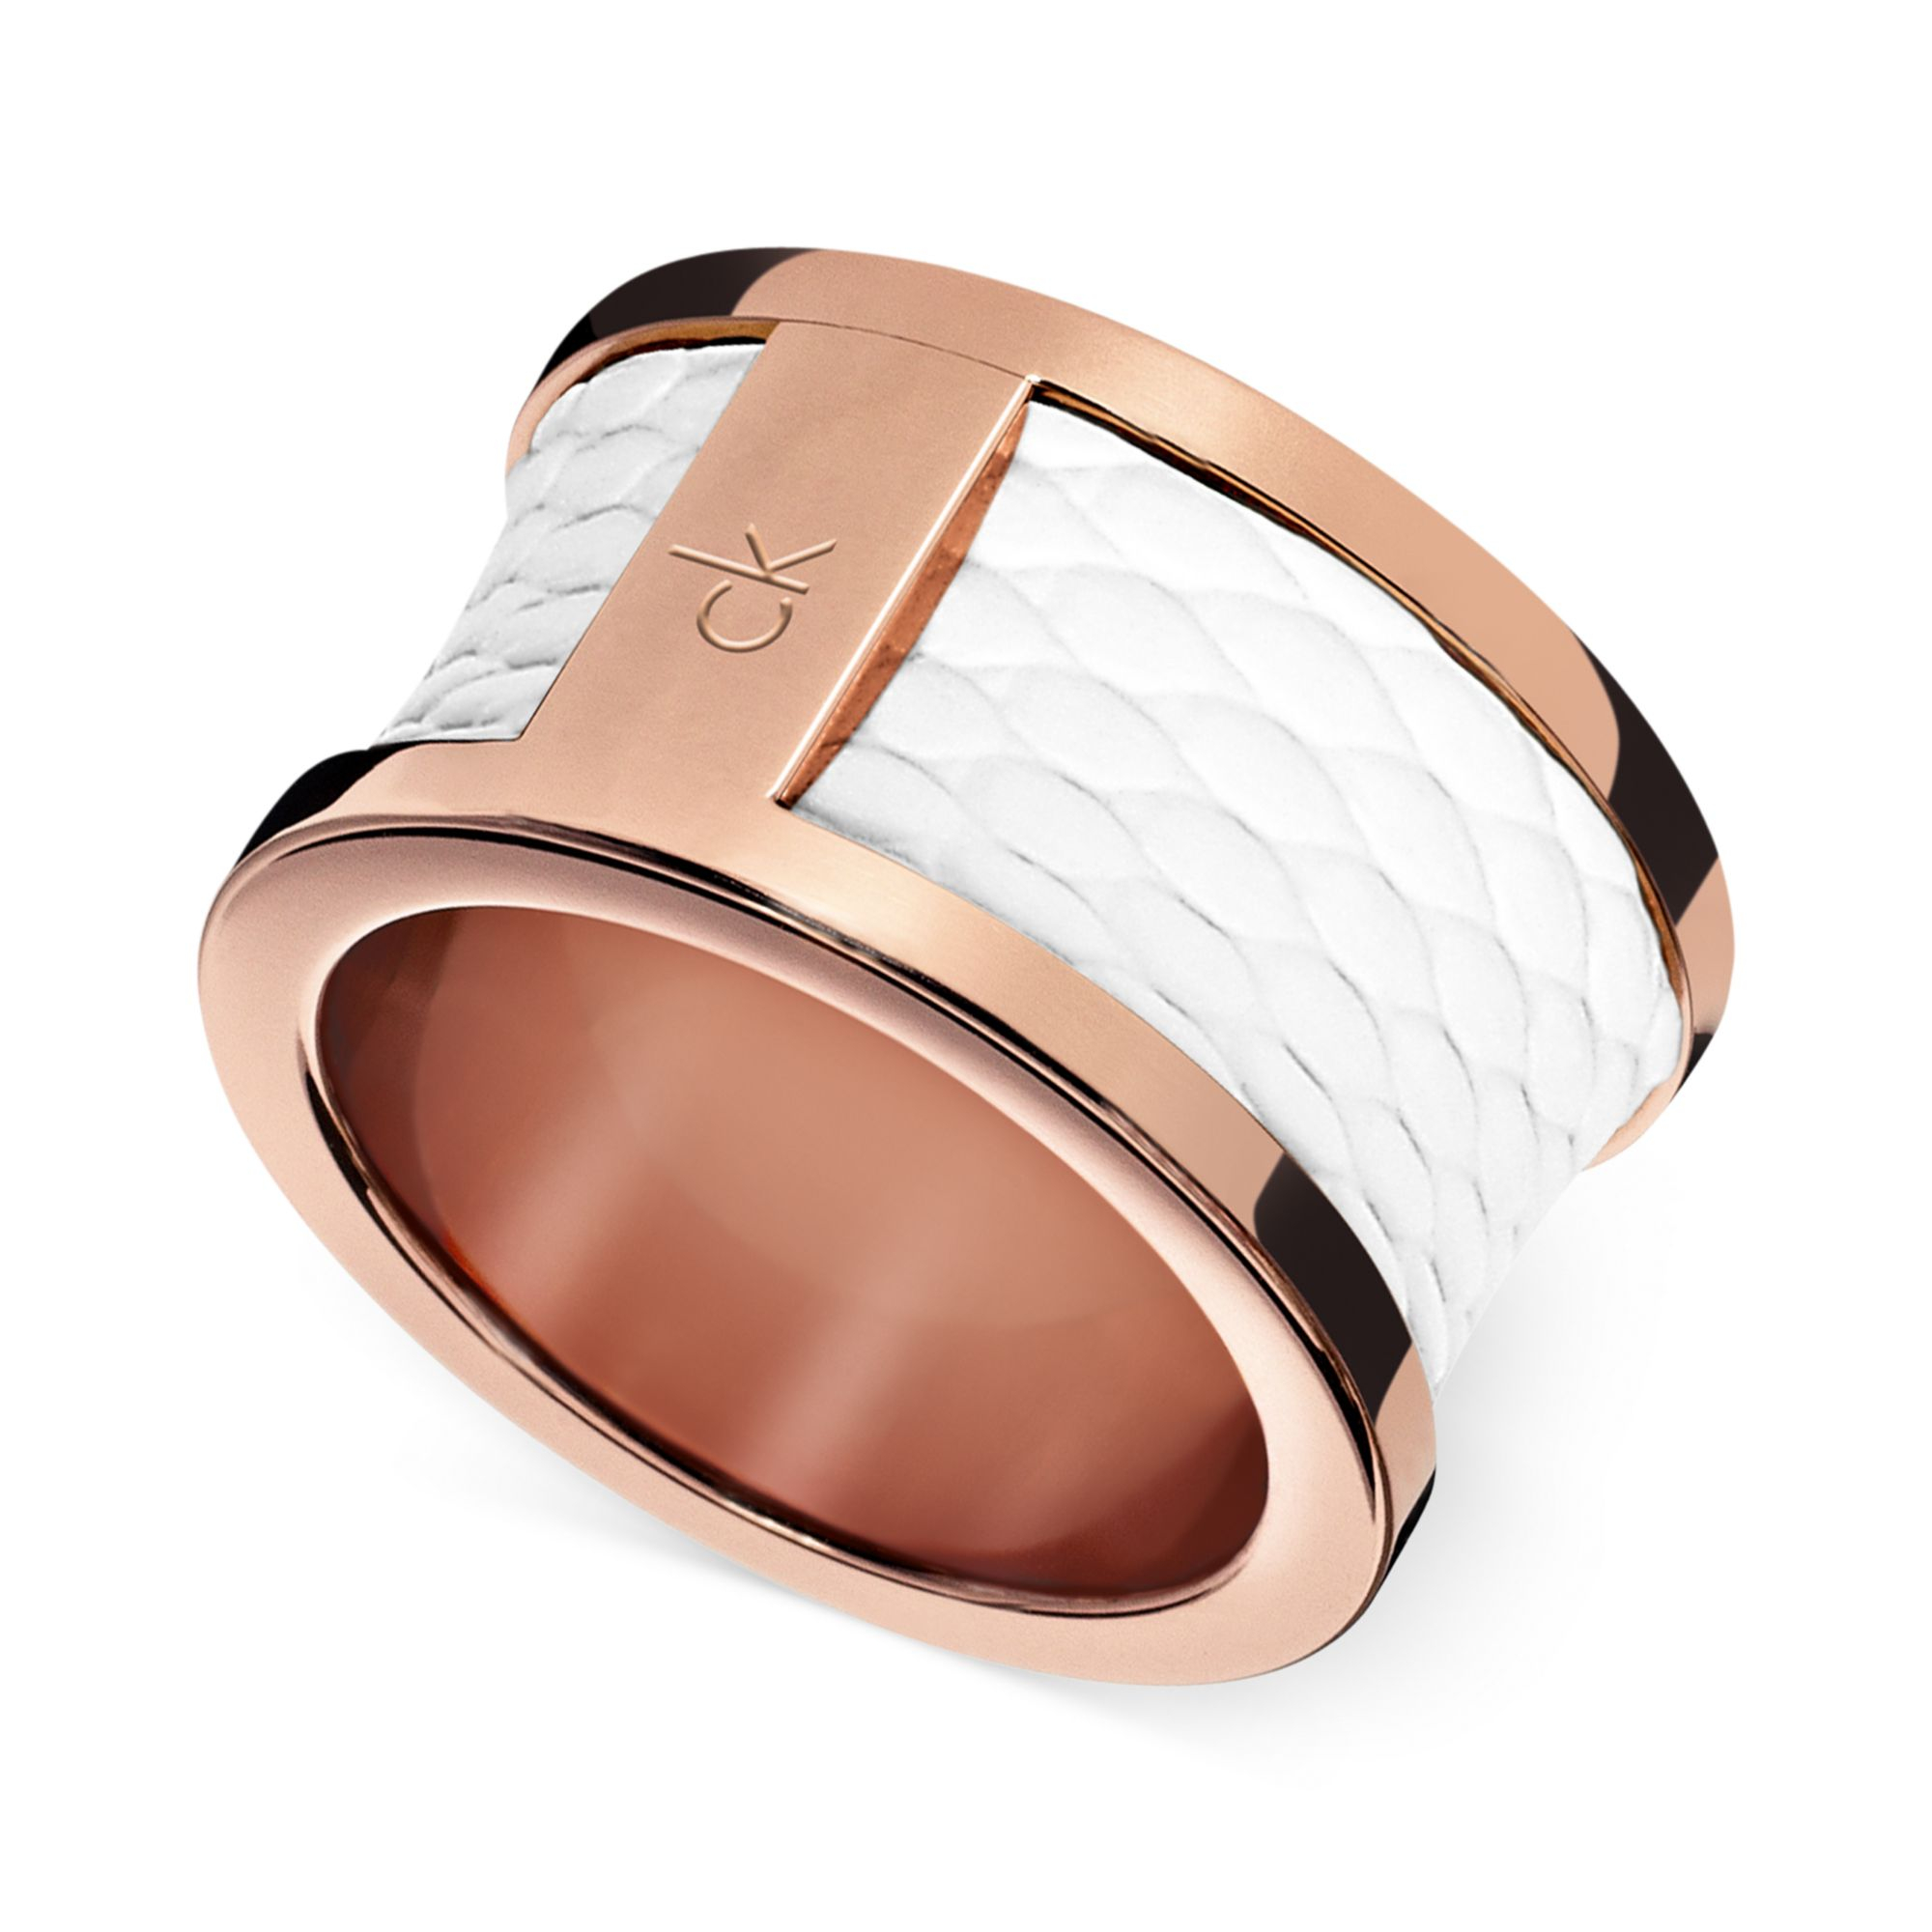 Lyst Calvin Klein Ck Rose Gold Pvd White Leather Barrel Ring in Pink